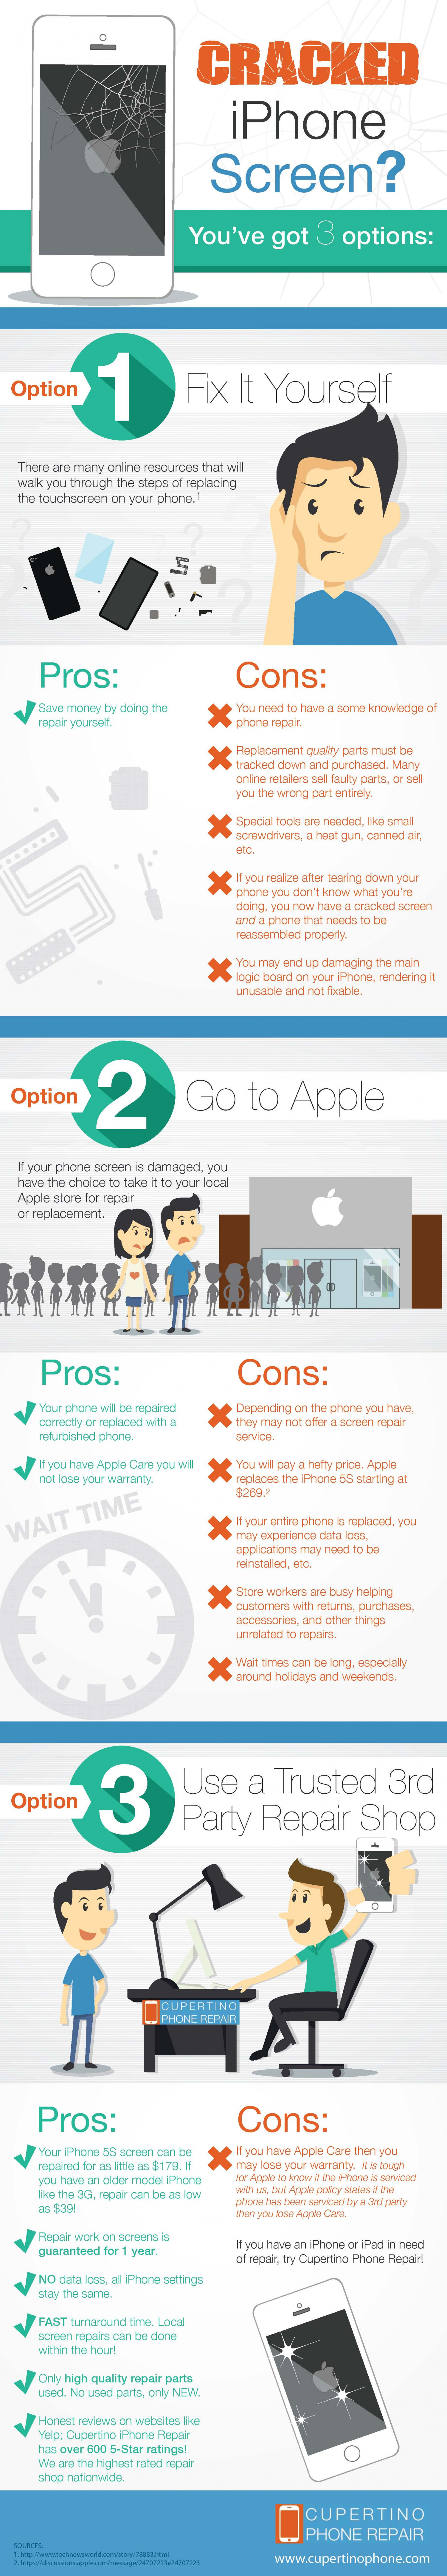 Cracked iPhone Screen Infographic